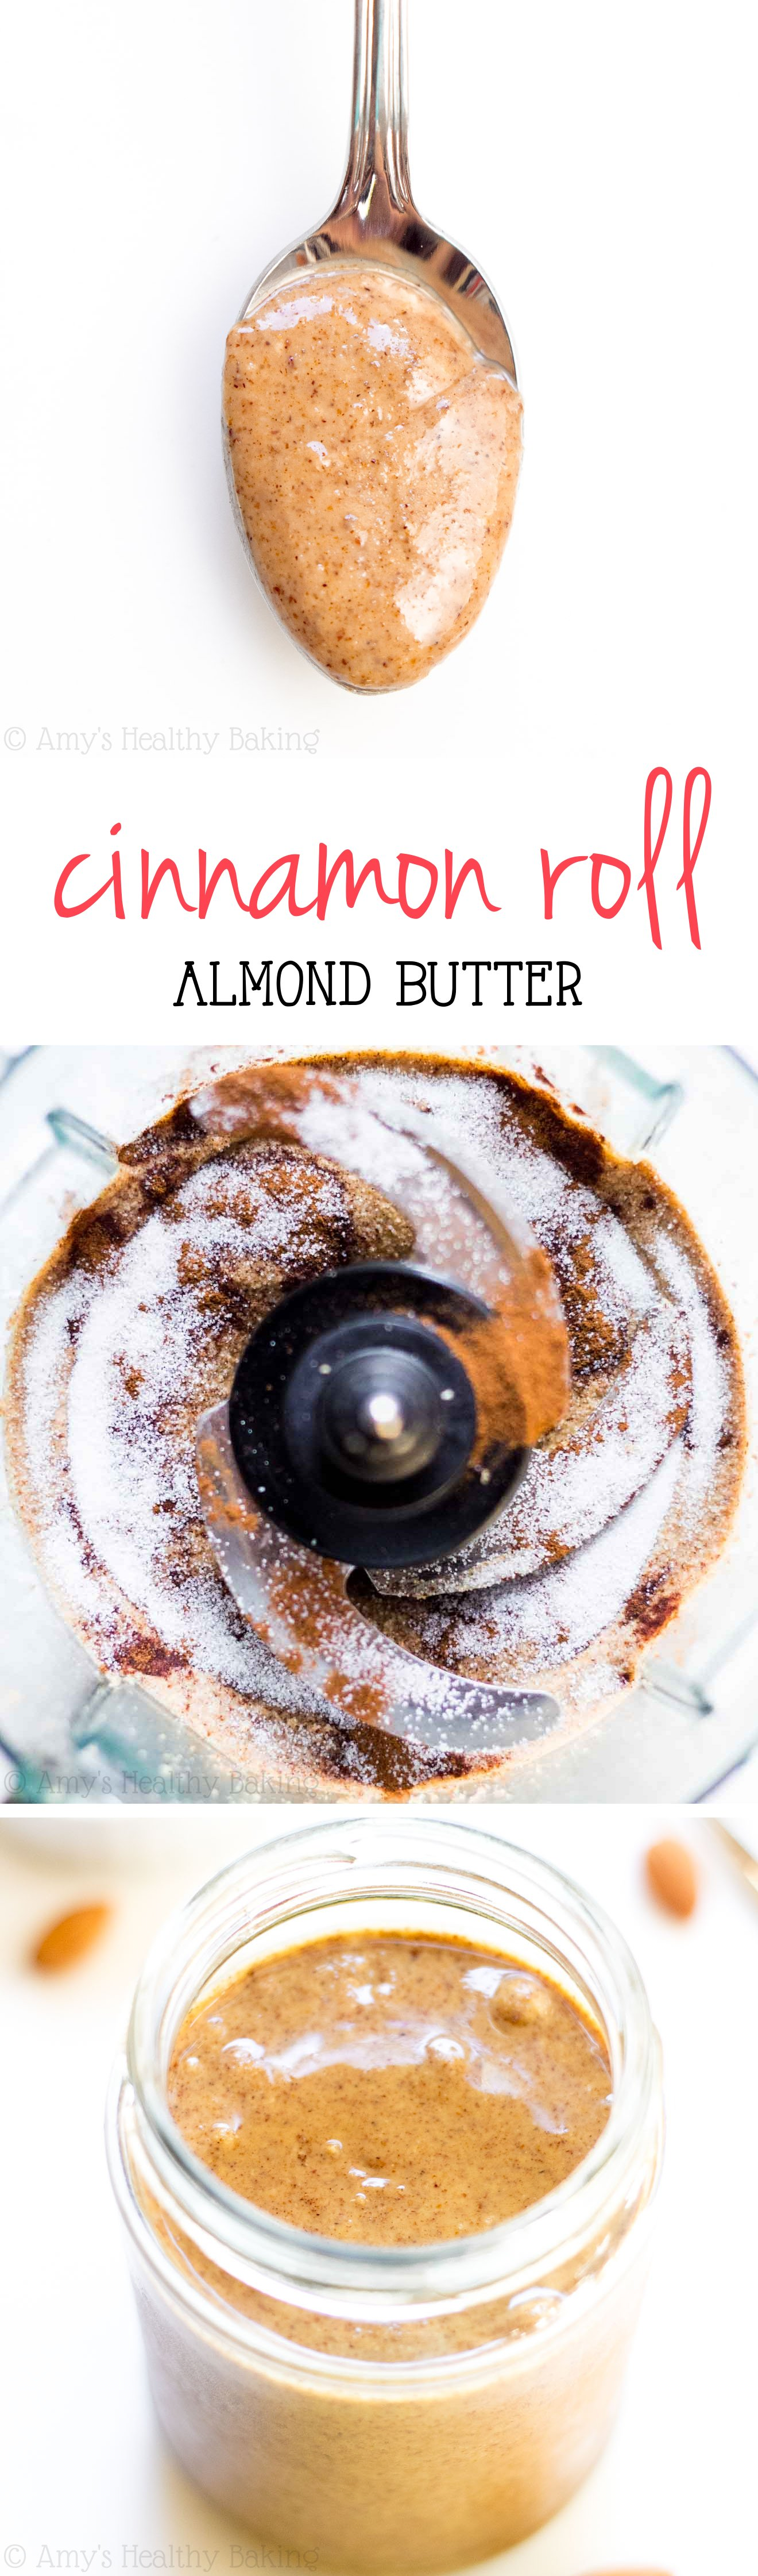 Cinnamon Roll Almond Butter -- you just need 4 ingredients & 10 minutes! It really tastes like cinnamon rolls & costs half the price of store-bought!